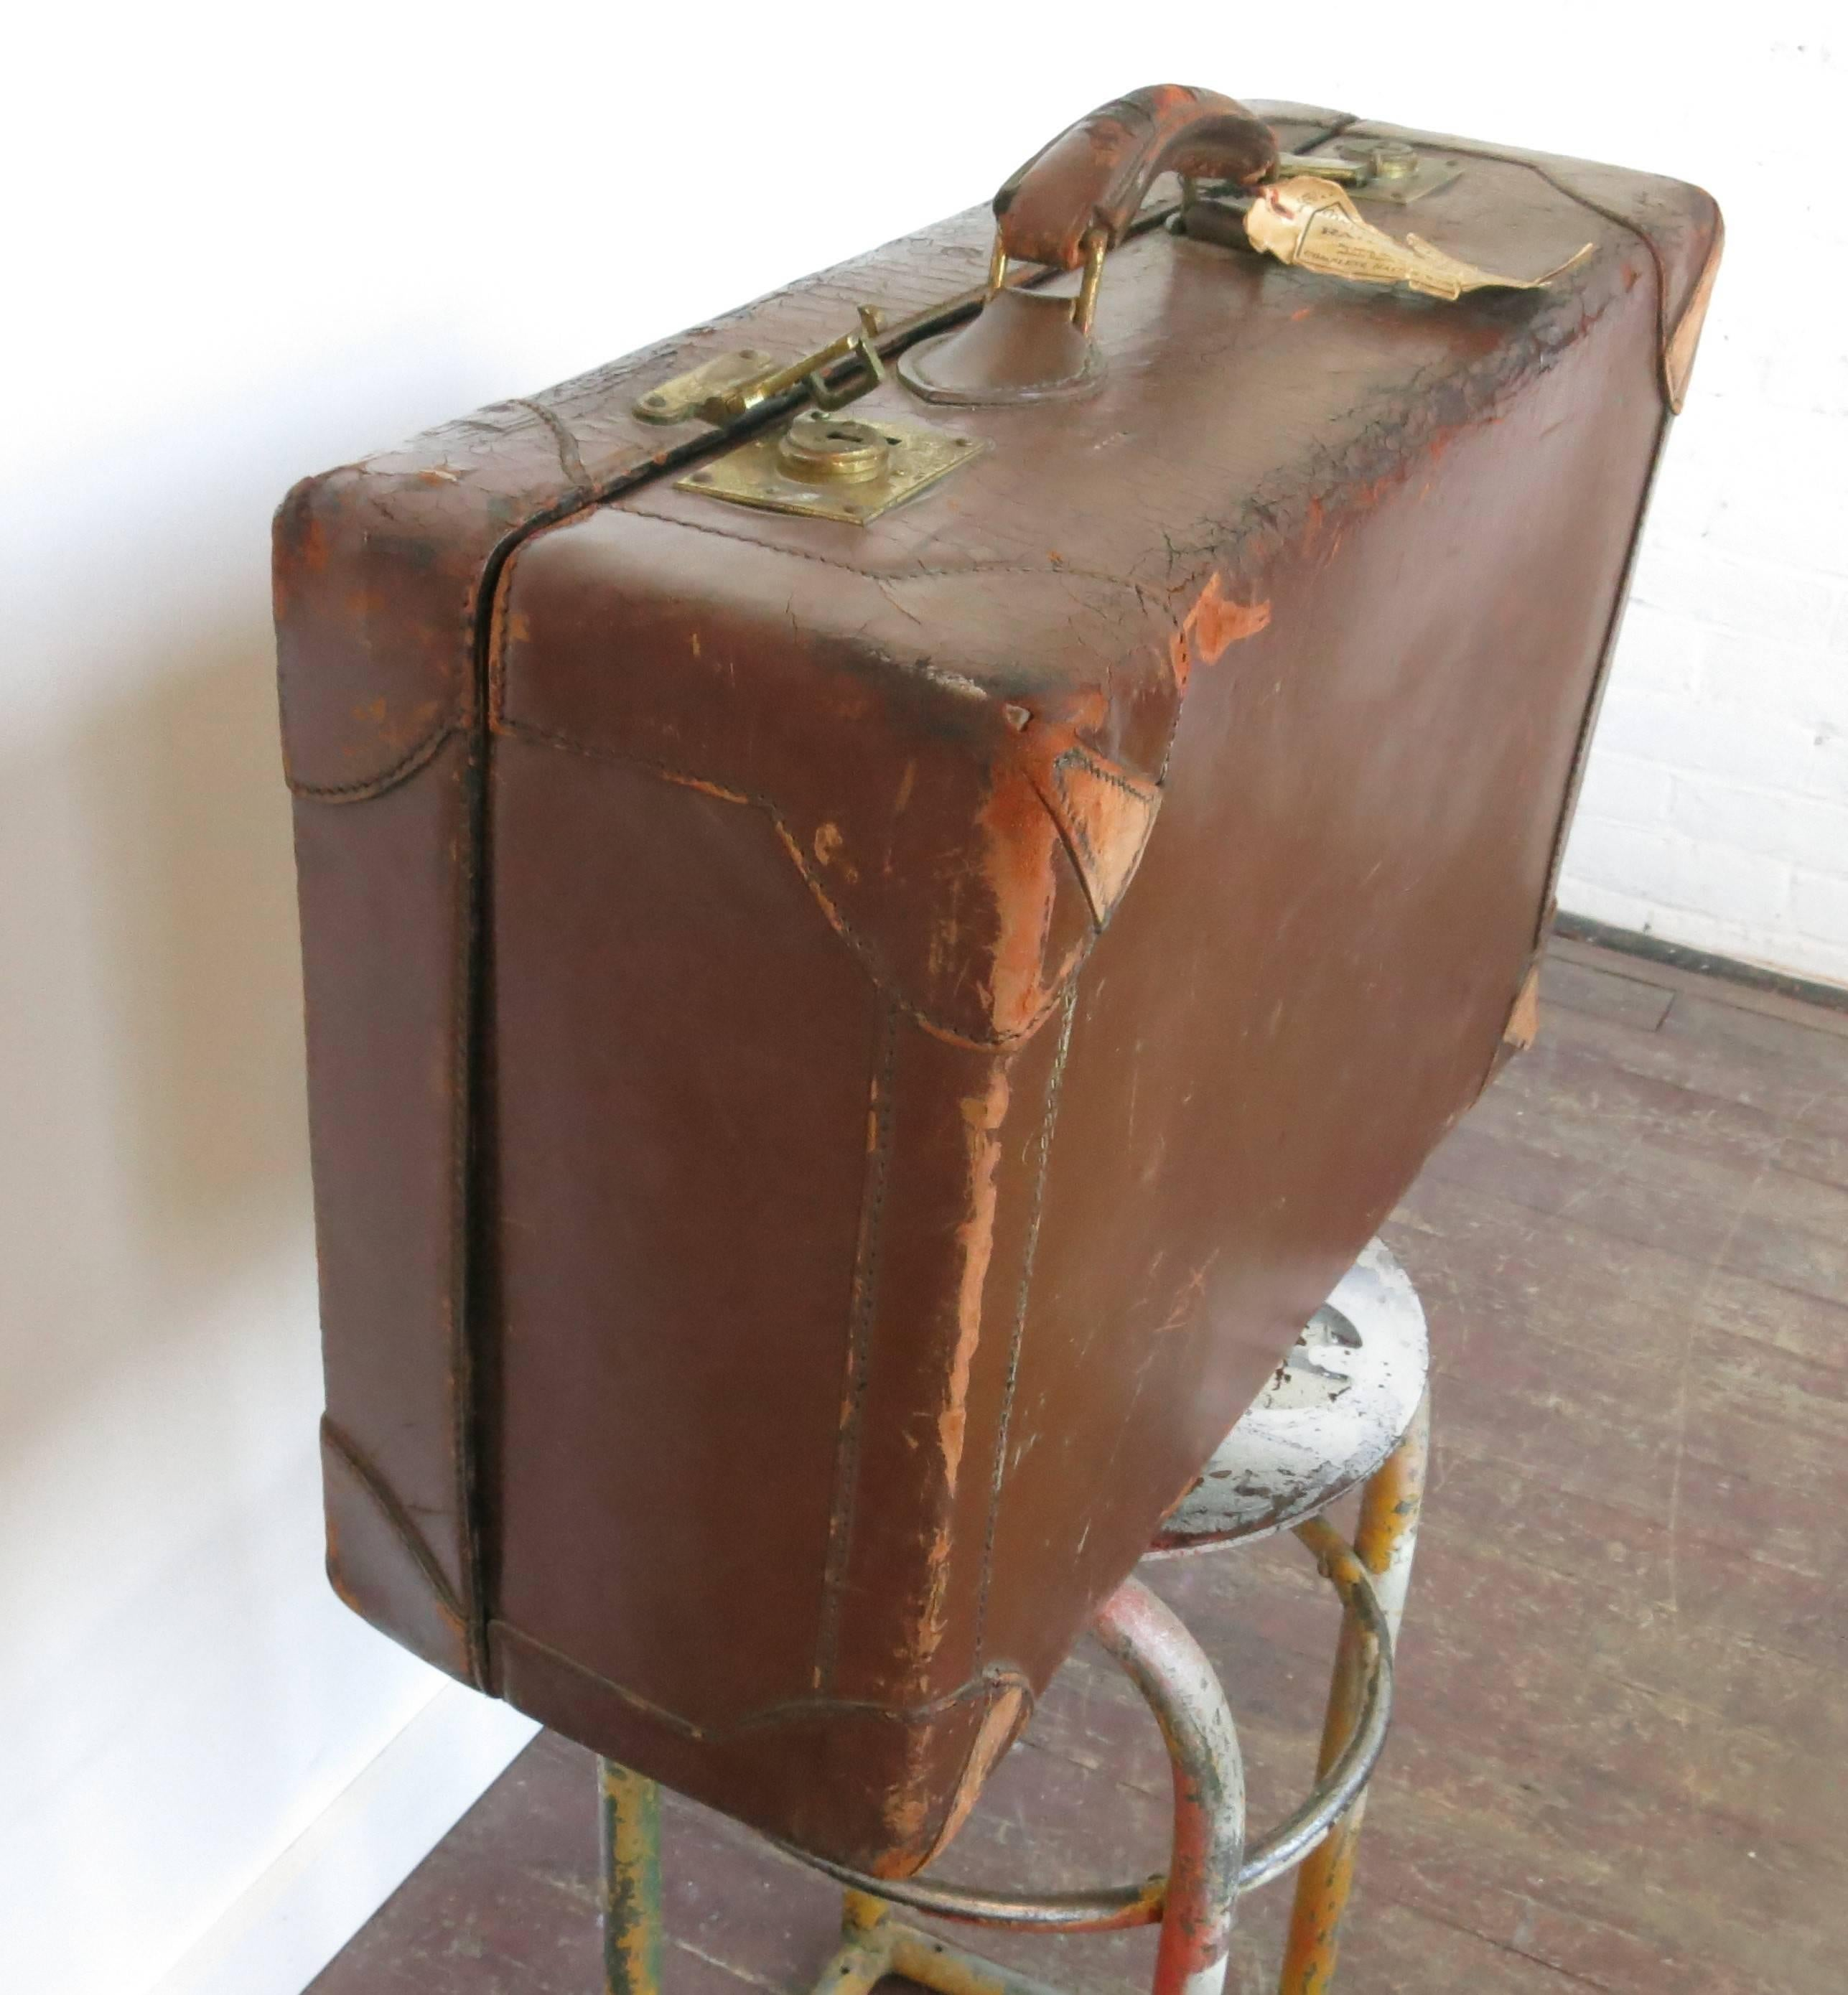 luggage polished co stack id by collectibles aircraft suitcases master home the of at vintage trunks more heston suitcase furniture f drawers aluminium with accents